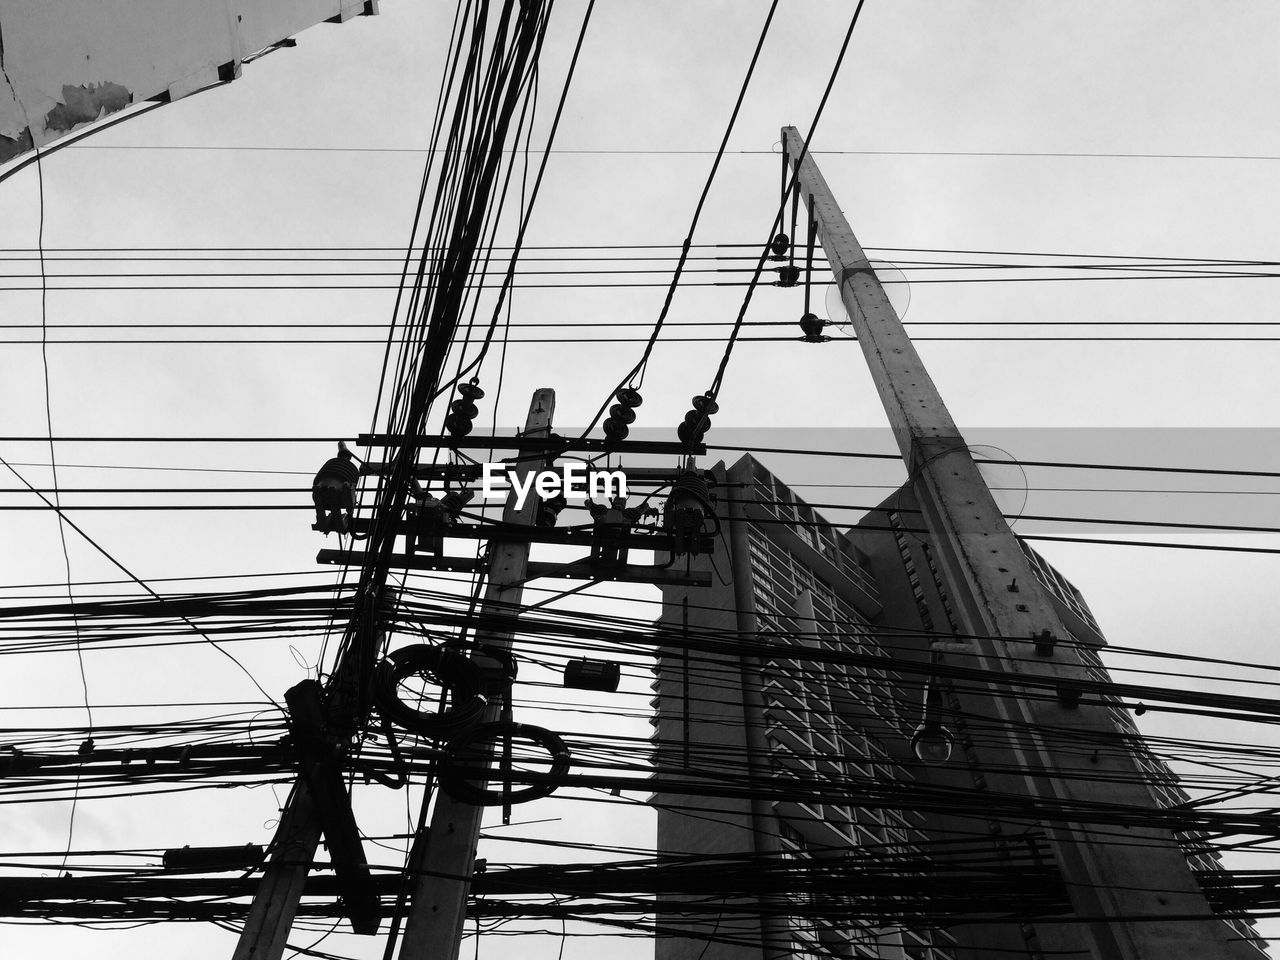 Low Angle View Of Electricity Pylons By Building Against Sky